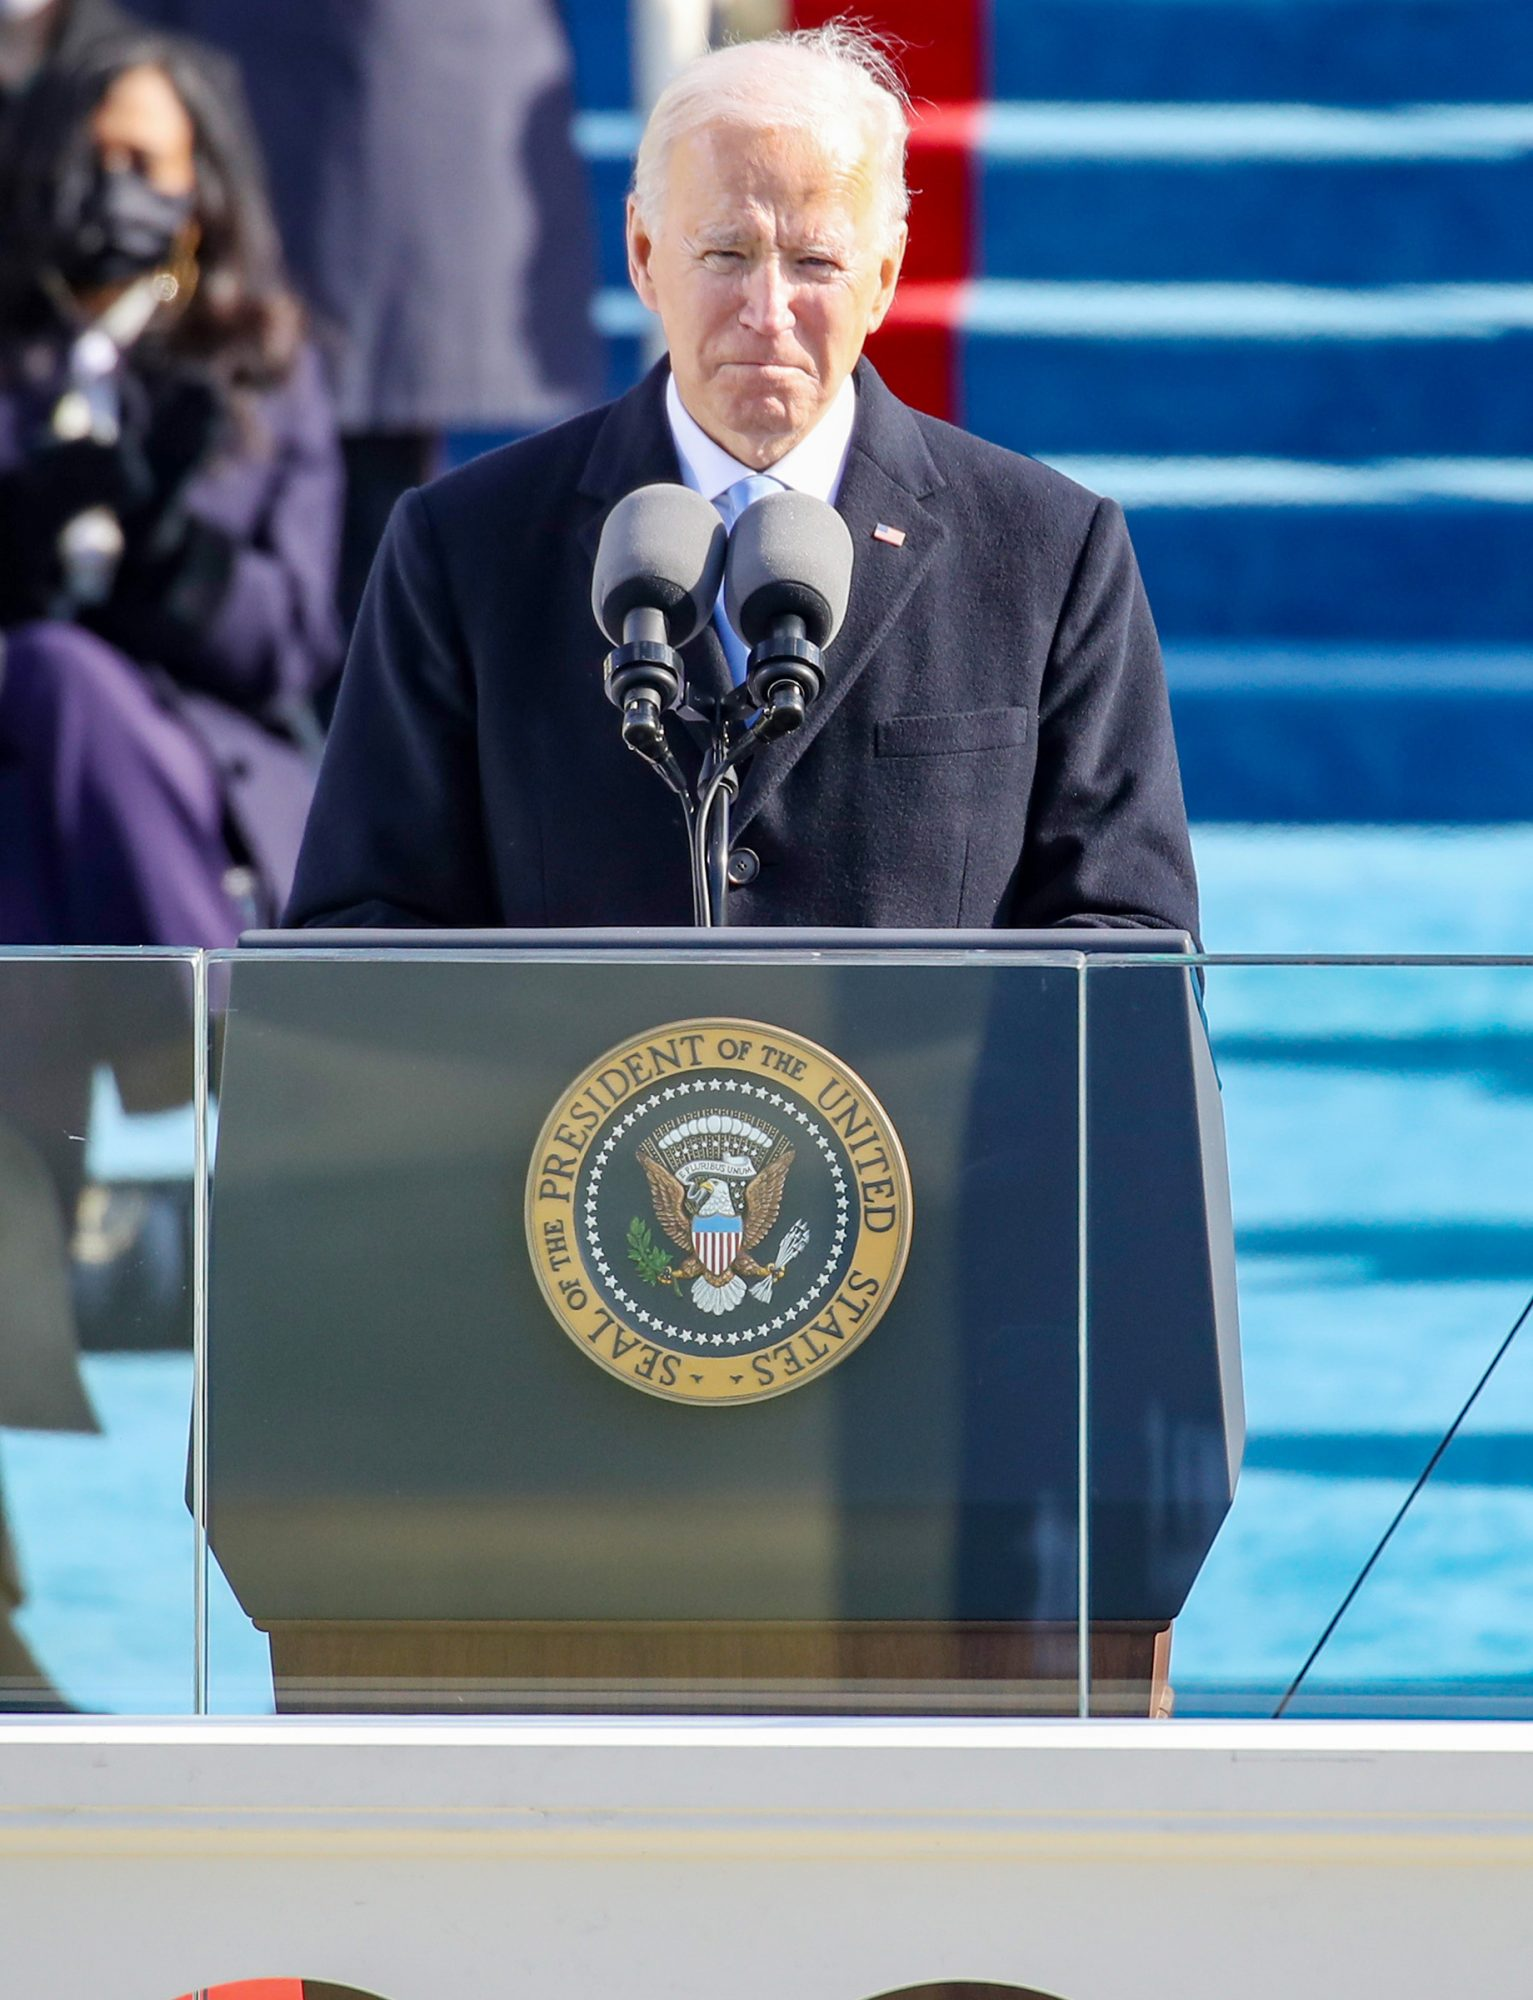 U.S. President Joe Biden reacts as he delivers his inaugural address on the West Front of the U.S. Capitol on January 20, 2021